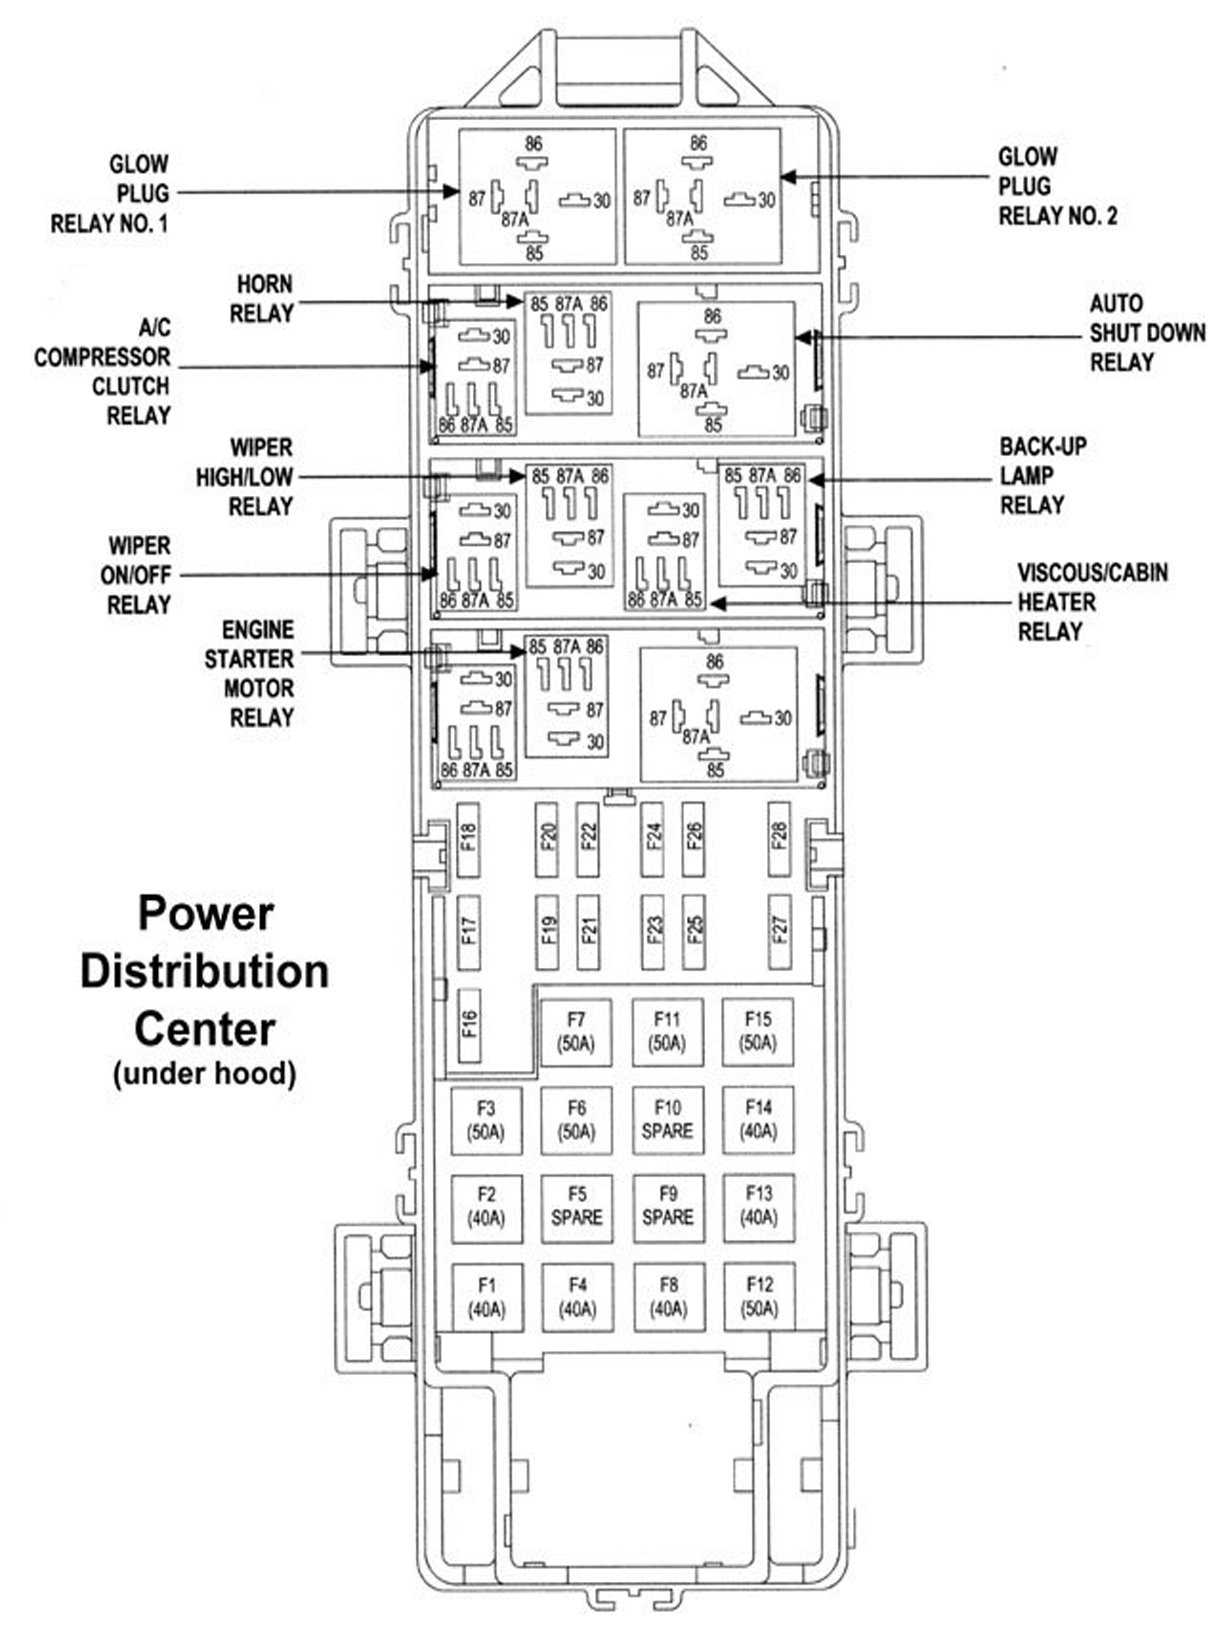 2007 jeep liberty fuse box diagram 2007 image jeep wj fuse box diagram jeep wiring diagrams on 2007 jeep liberty fuse box diagram